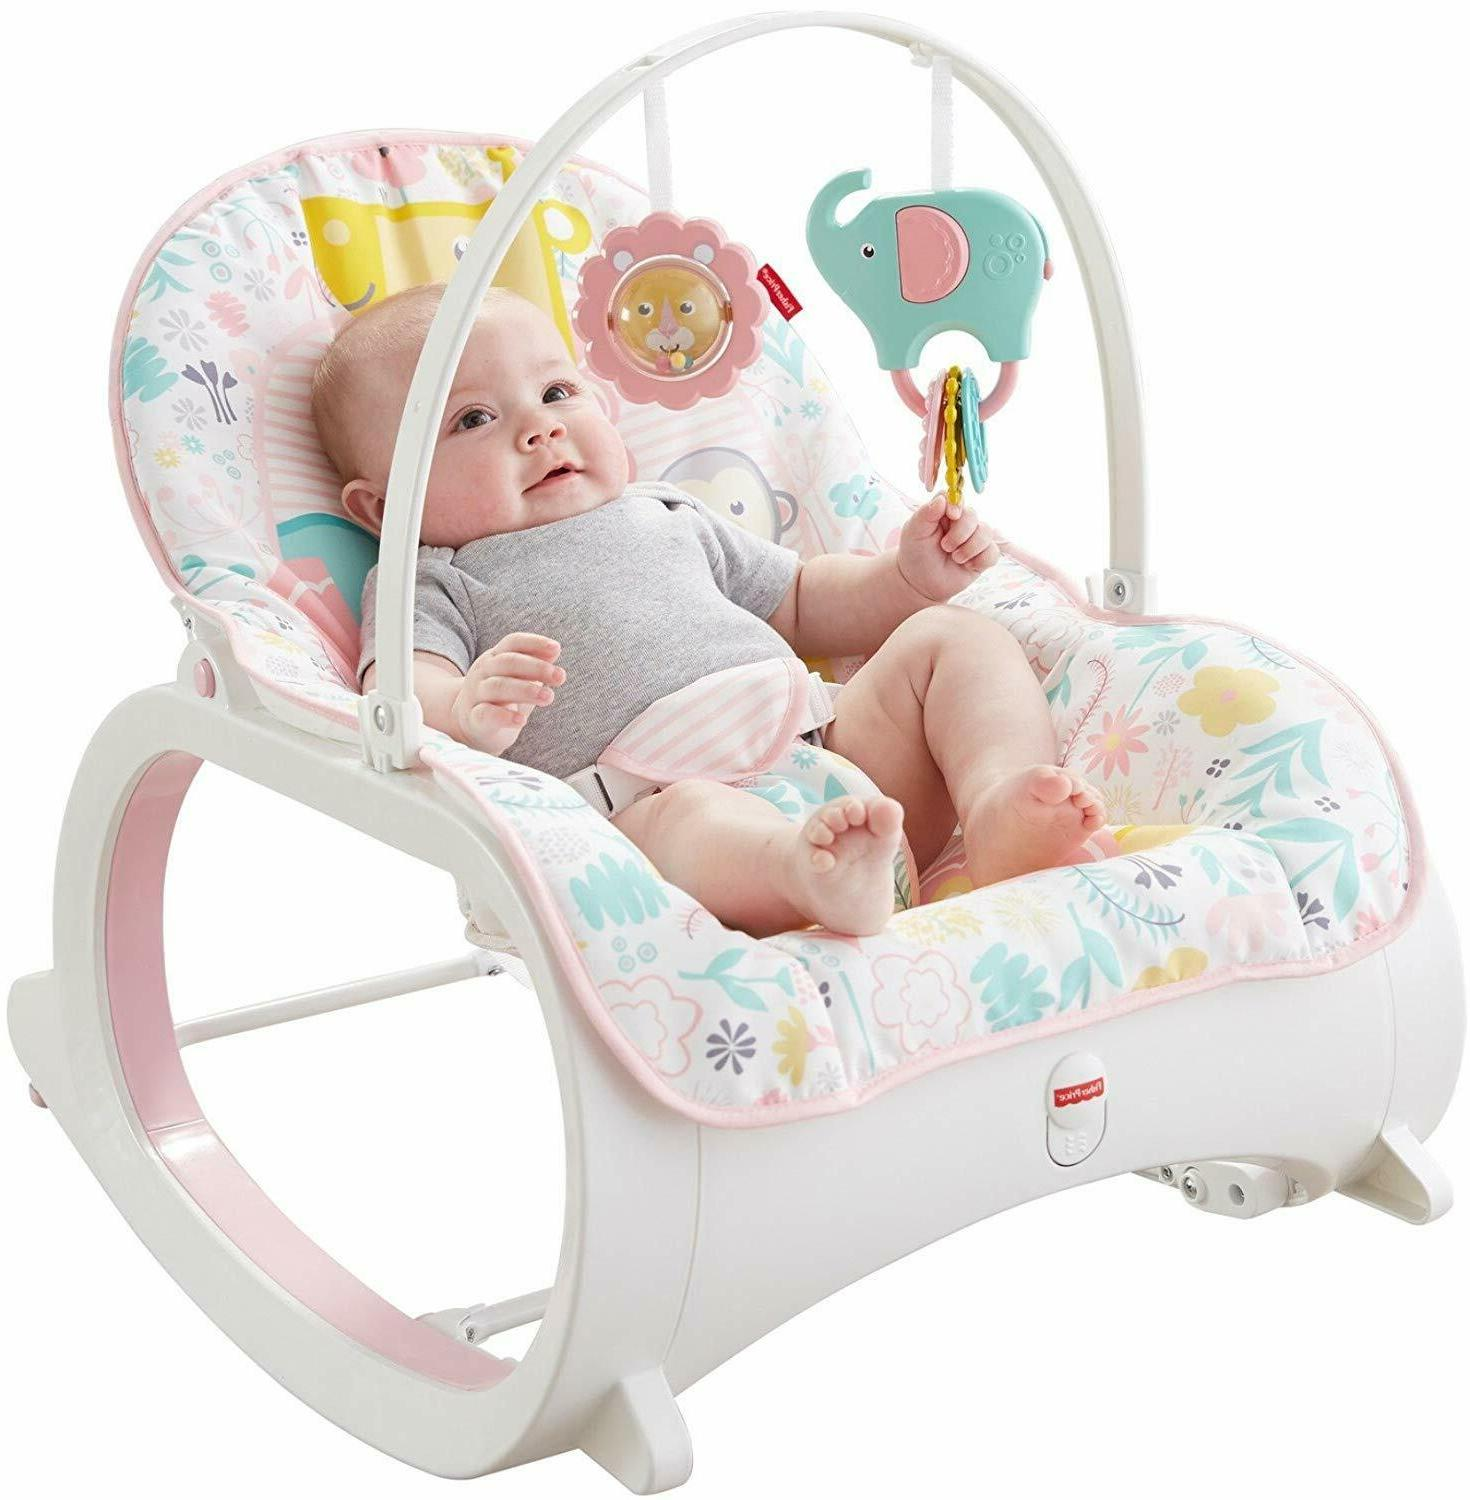 Infant to Toddler Rocker Chair Baby Vibrating Activity Play